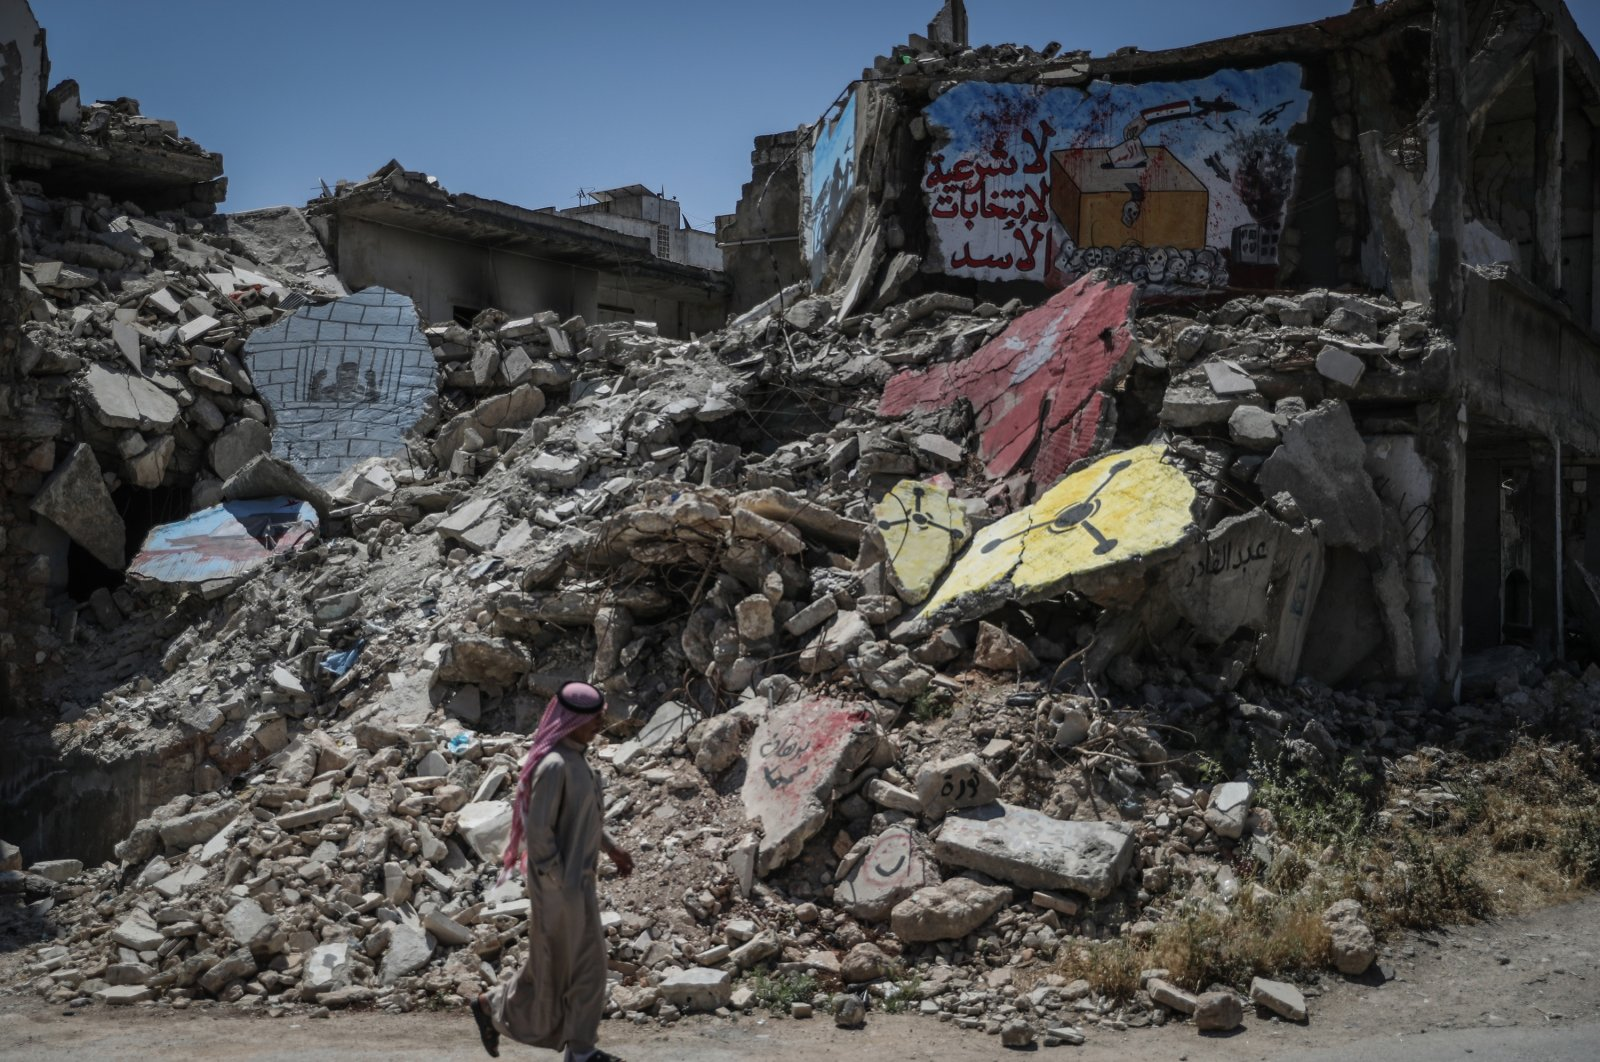 """Graffiti in Arabic that reads """"No legitimacy of Assad's elections""""is seen painted on the remains of a destroyed building, Idlib, Syria, May 26, 2021. (Getty Images)"""